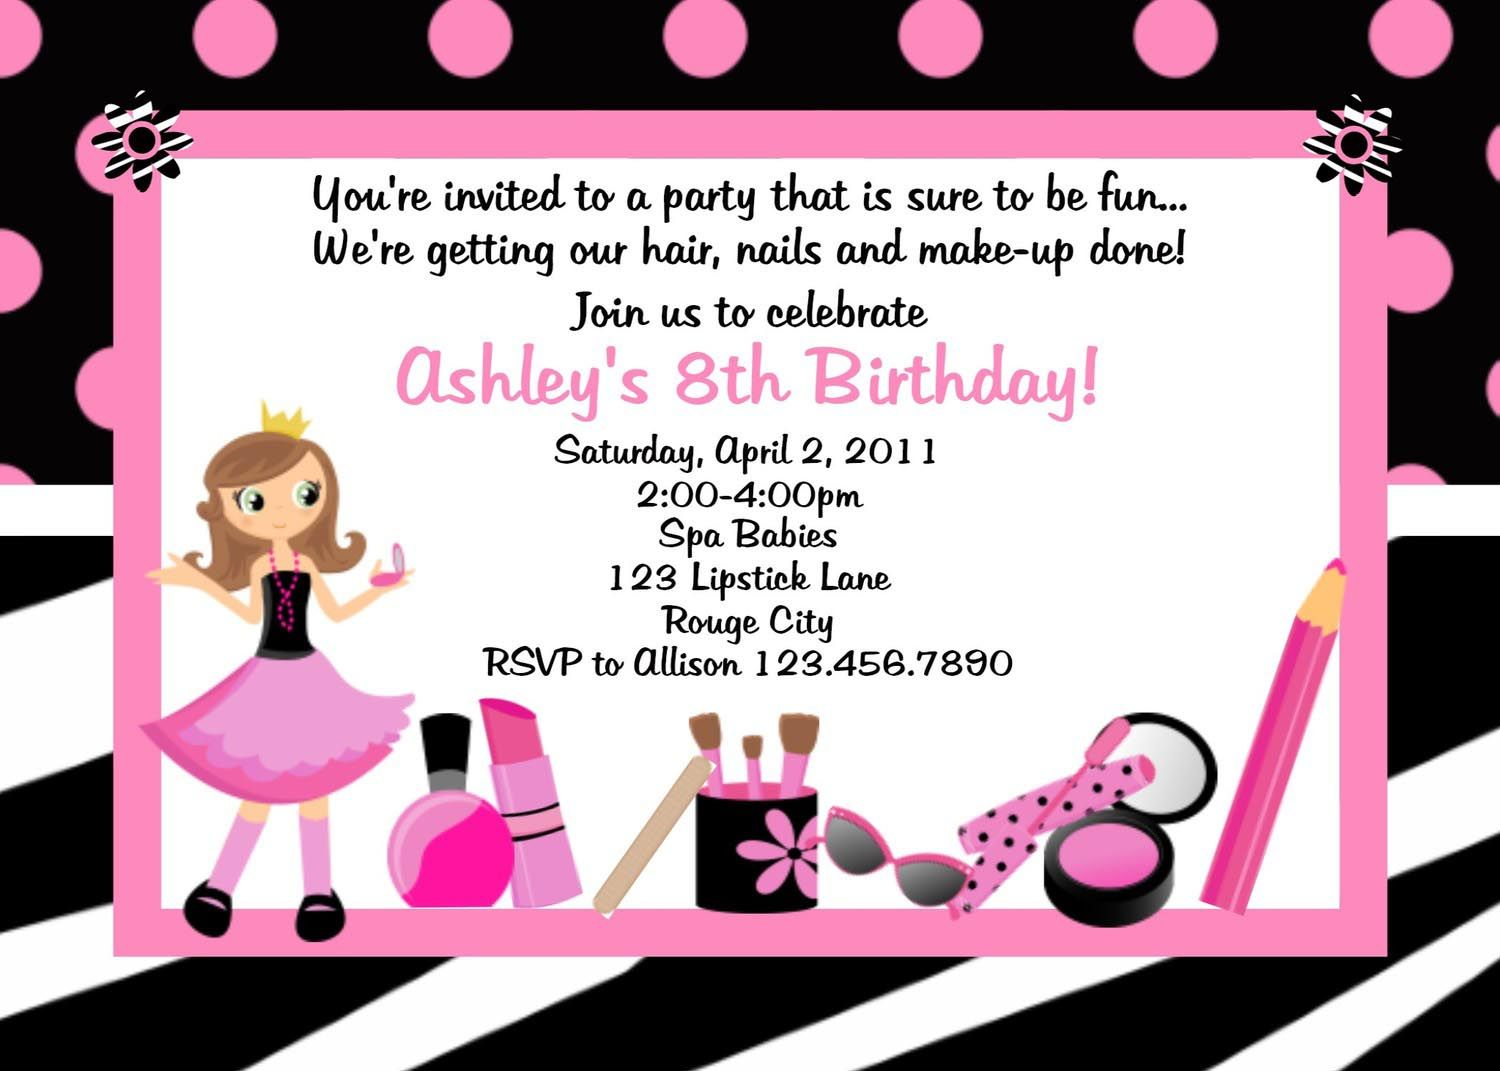 Kids Spa Party Invitations Spa Party Spa Party Invitations Spa